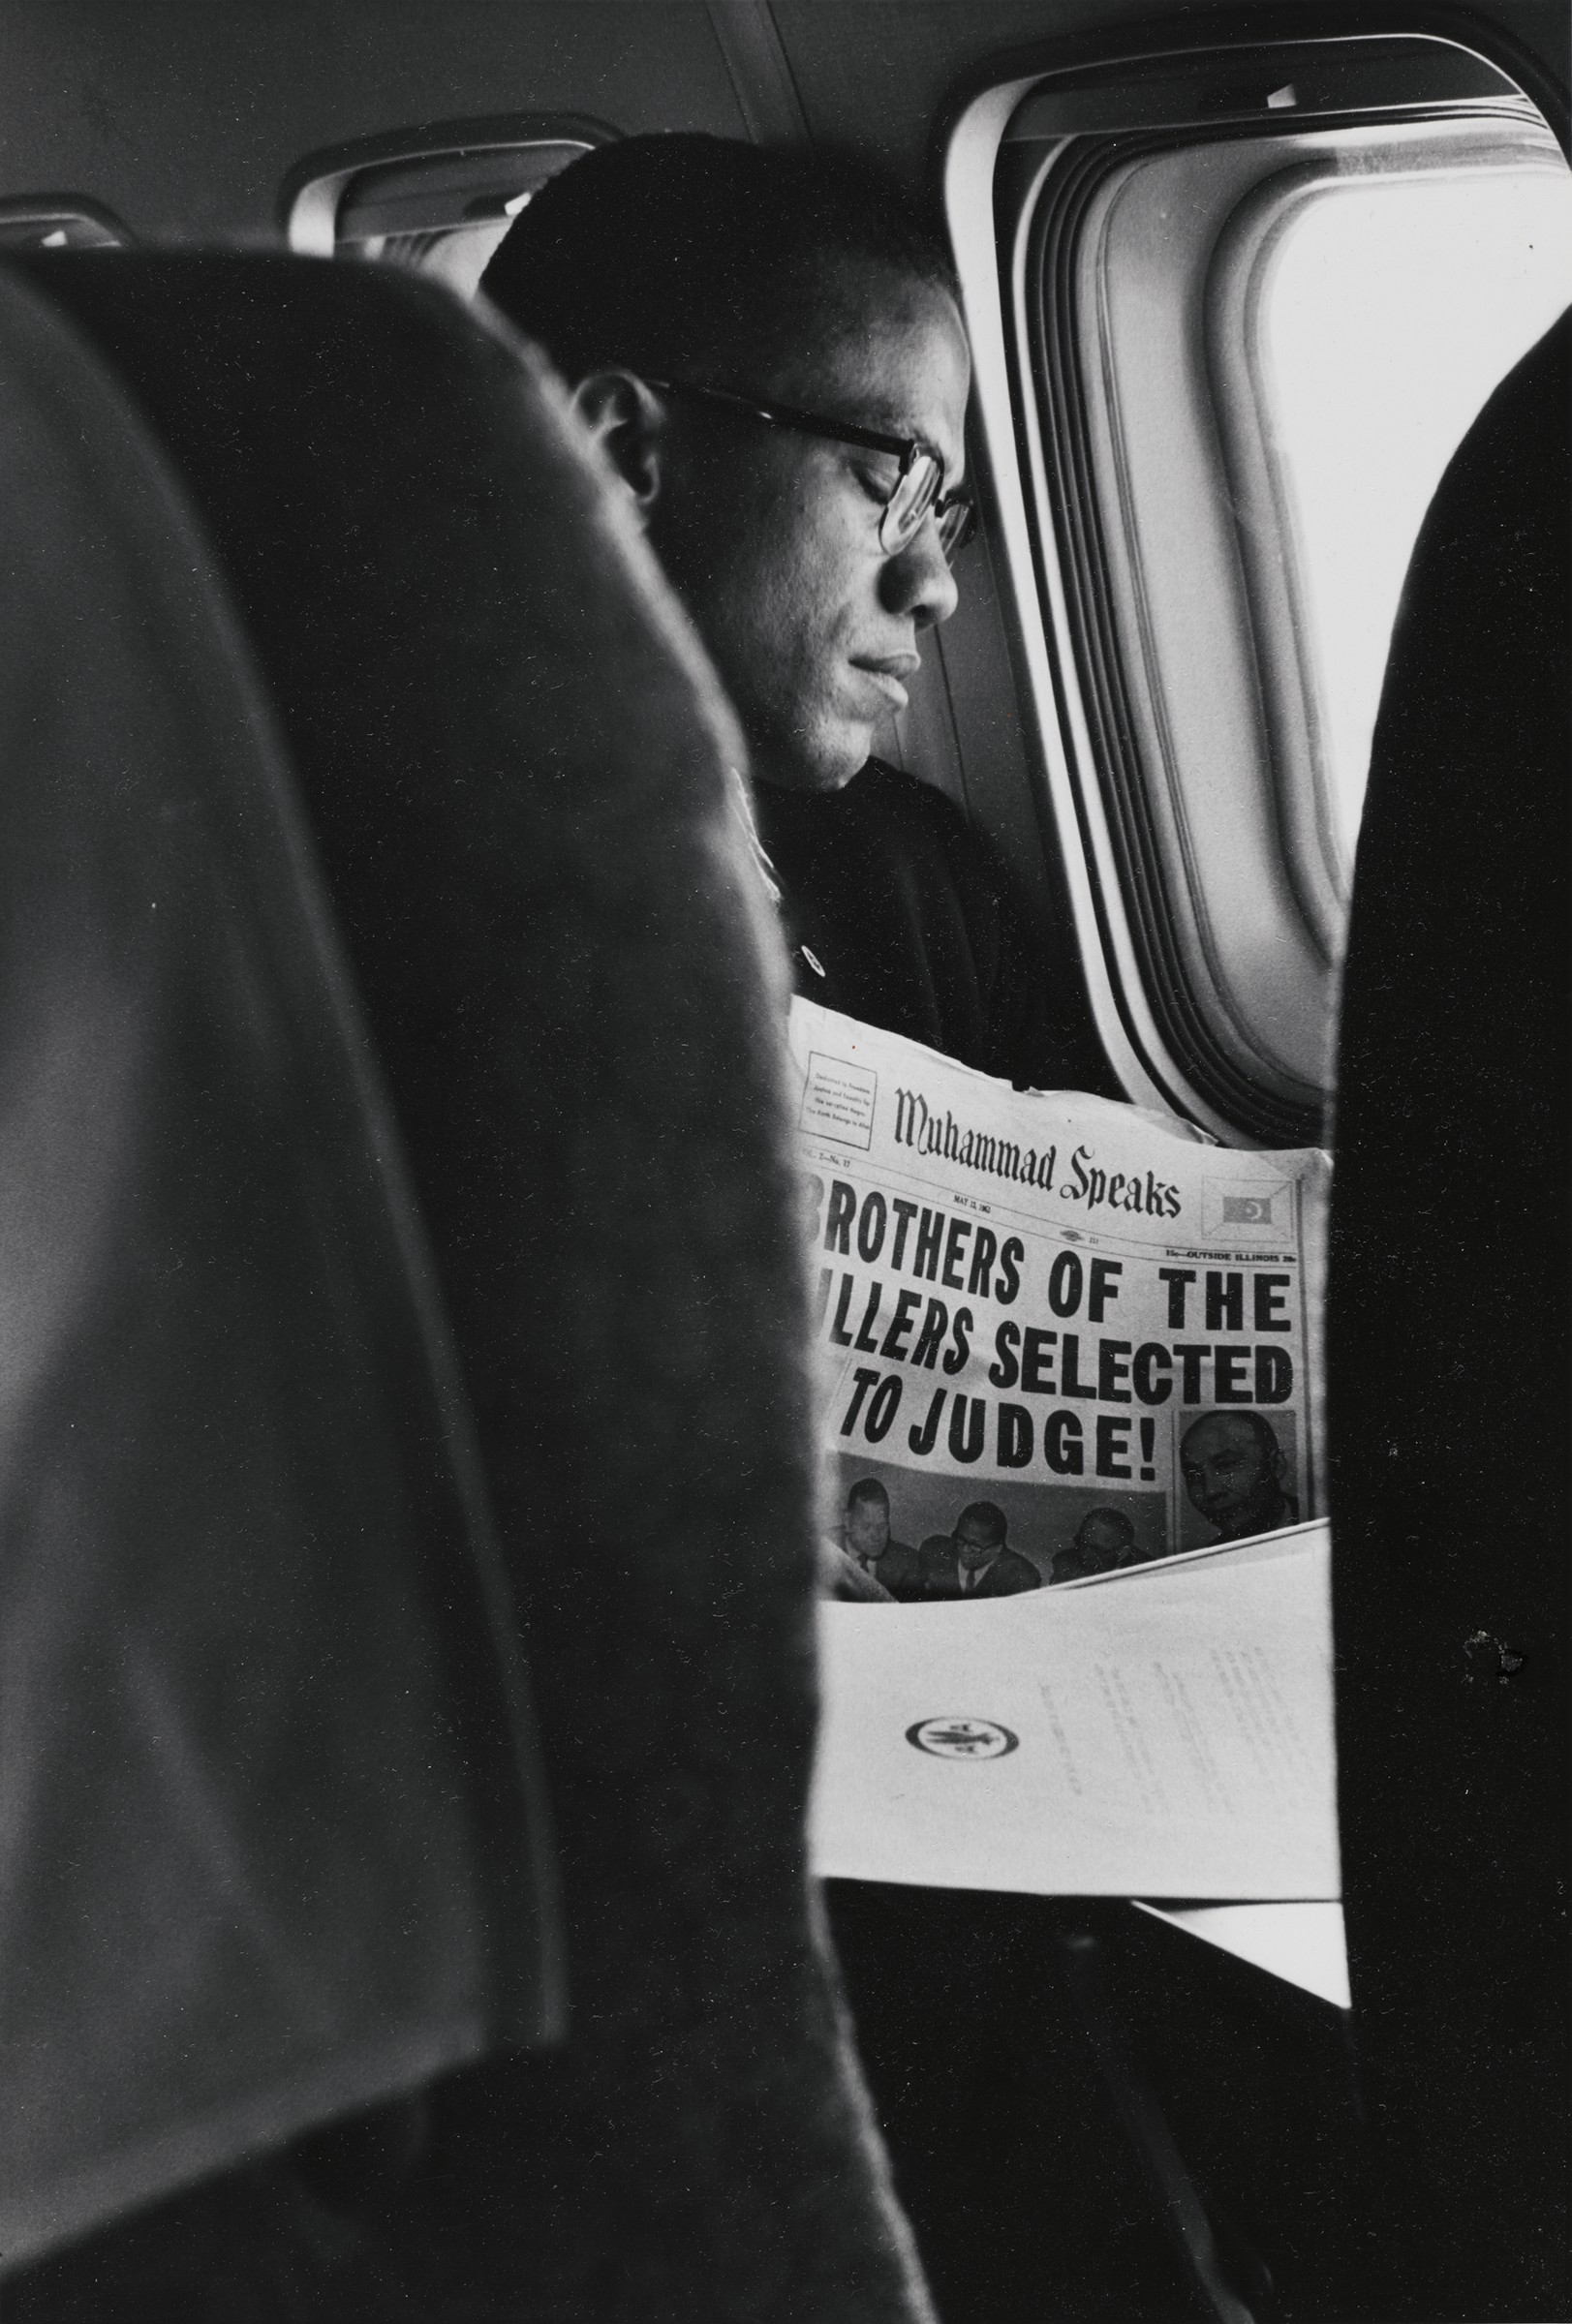 """This black and white photograph presents a view between airplane seats of a Black man with his eyes closed, glasses on, and resting his head against a luminous window. The headline of the Muhammad Speaks newspaper on his chest reads (with some letters not shown) """"Brothers of the killers selected to judge!"""""""